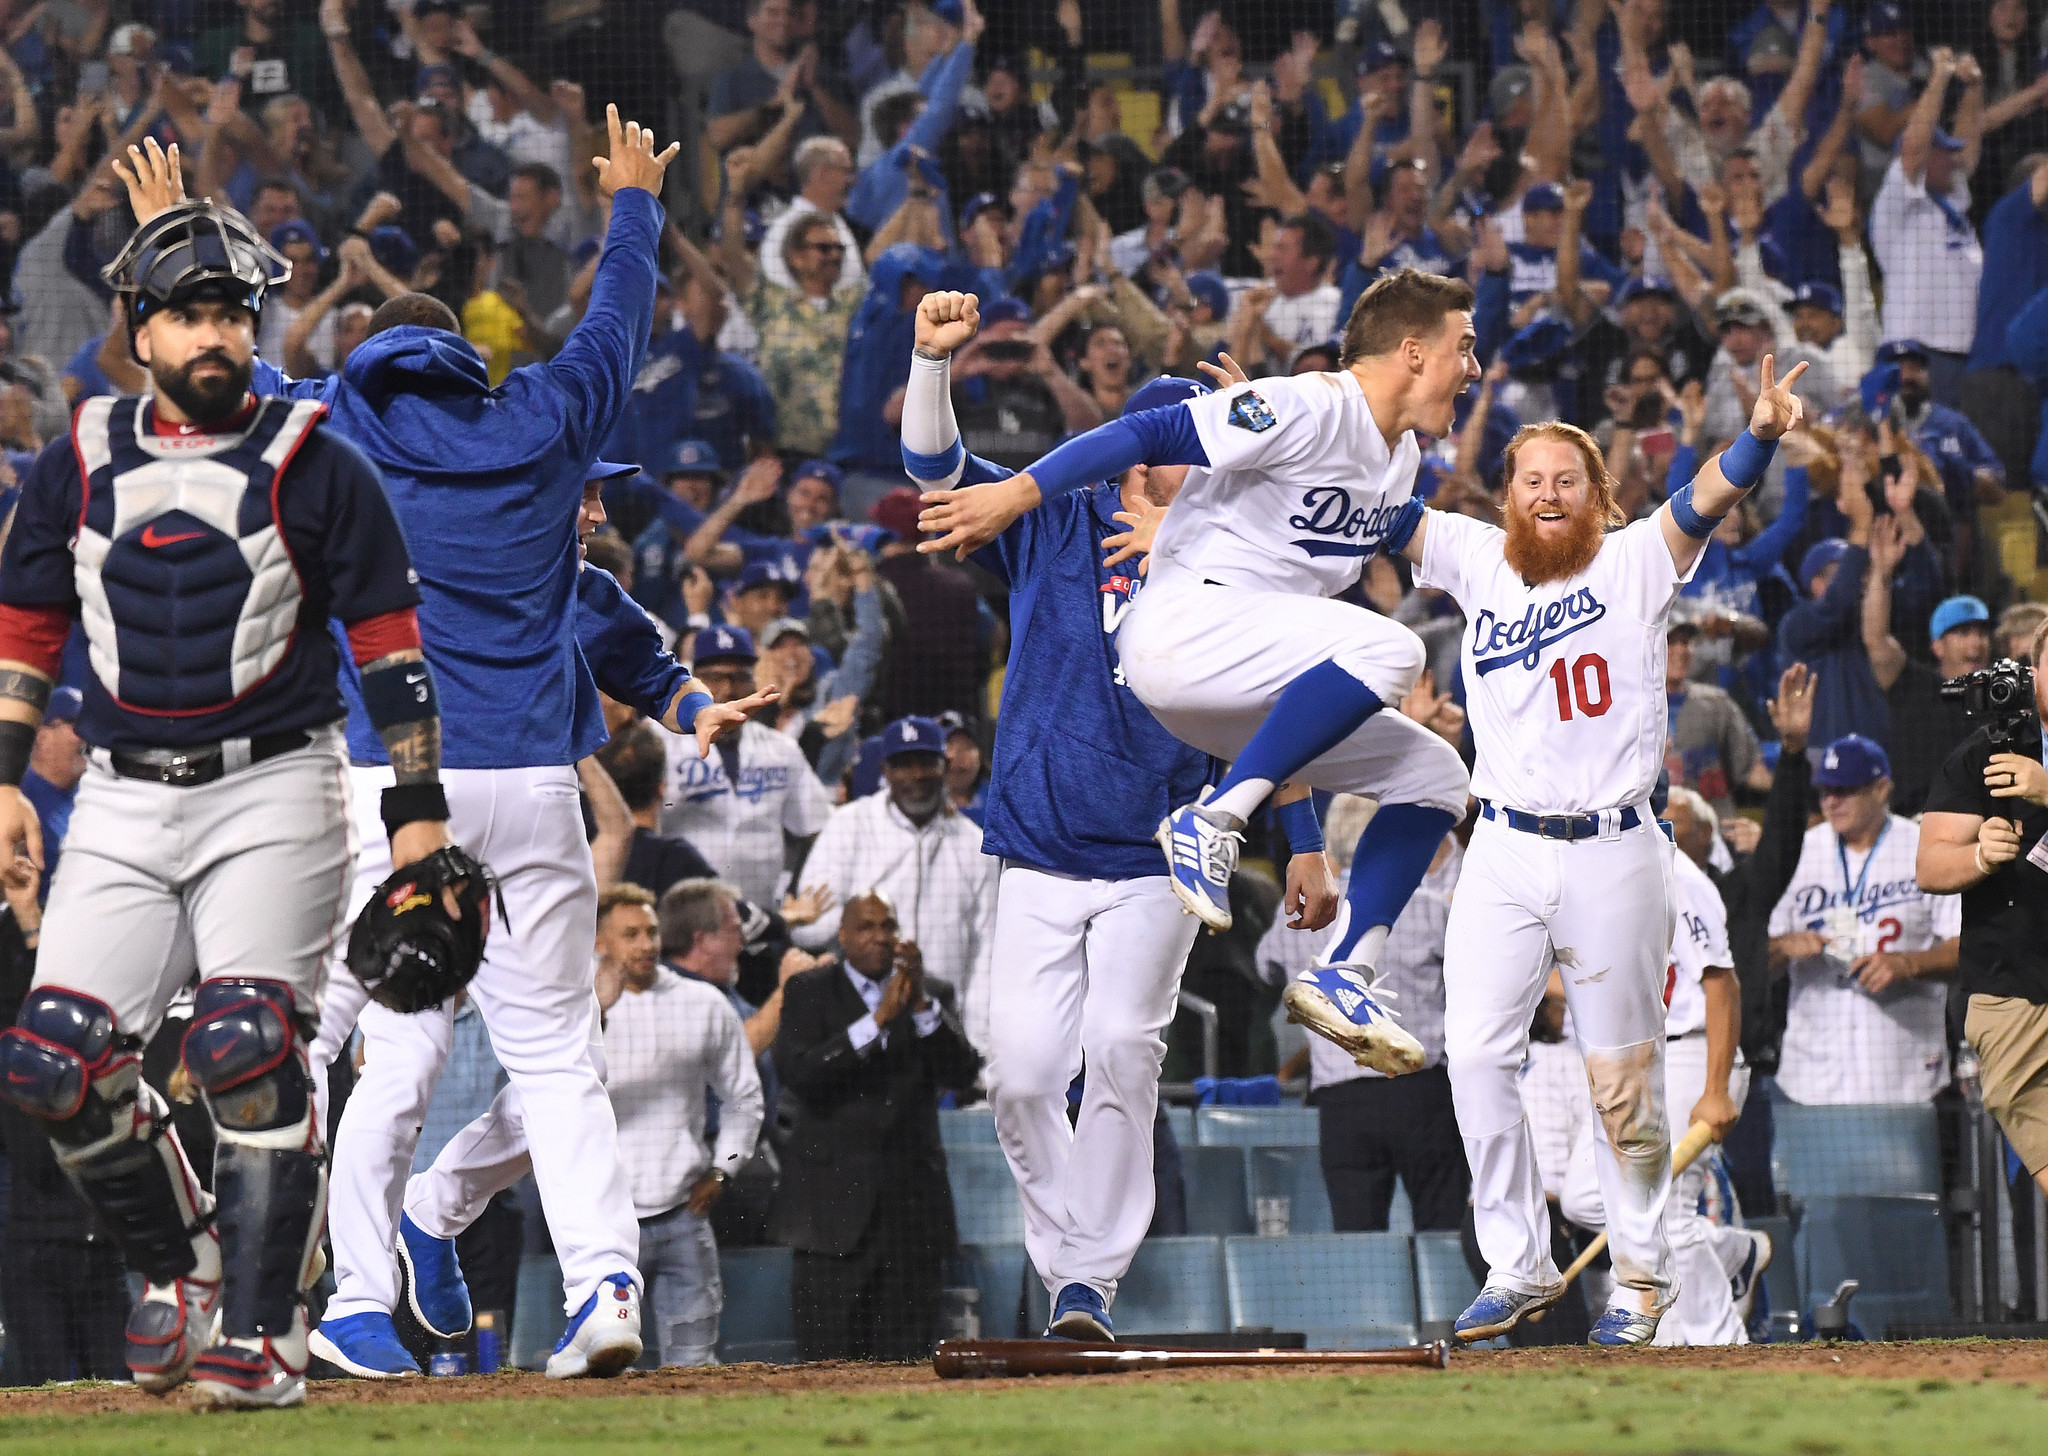 LOS ANGELES, CALIFORNIA , OCTOBER 26, 2018-Dodger players celebrate MaxMuncy's walk-off home run aga